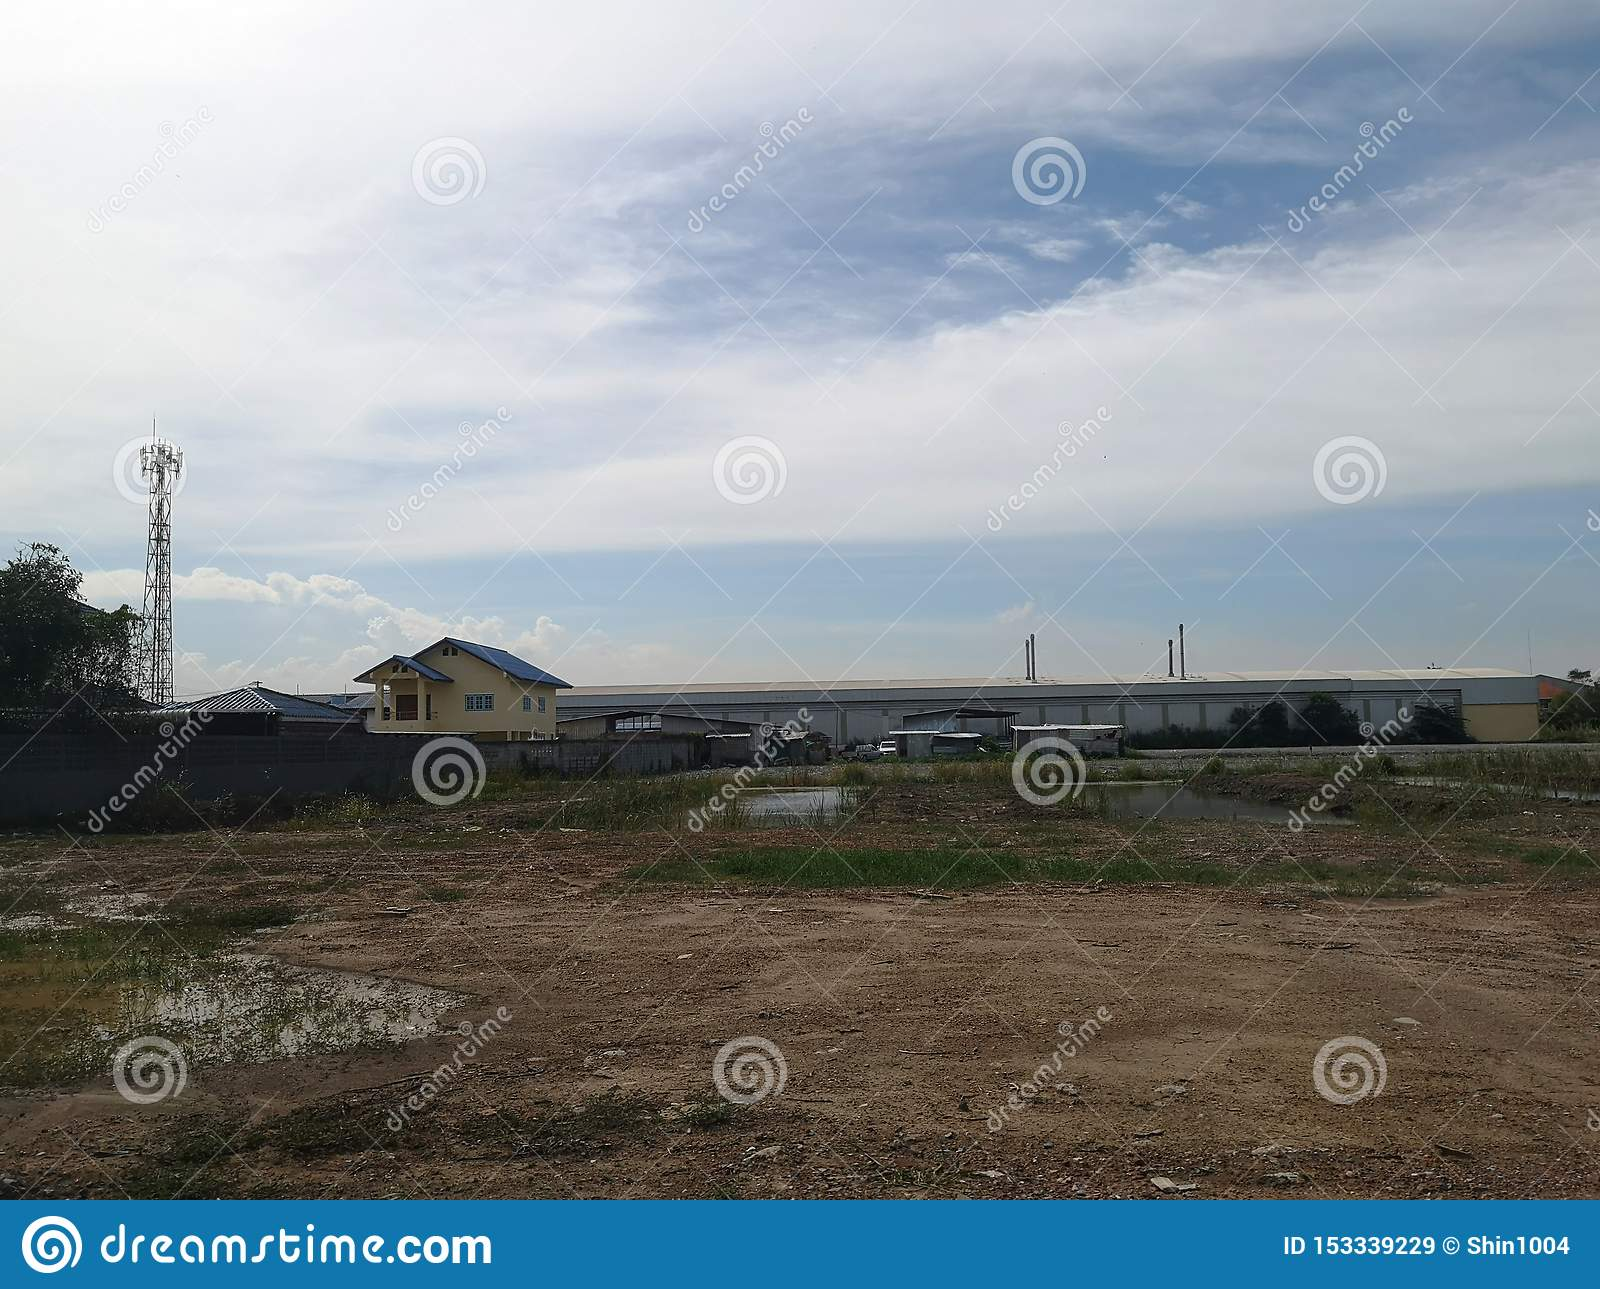 Land for sales concept. Landscape of empty land plot for development, and beautiful blue sky.